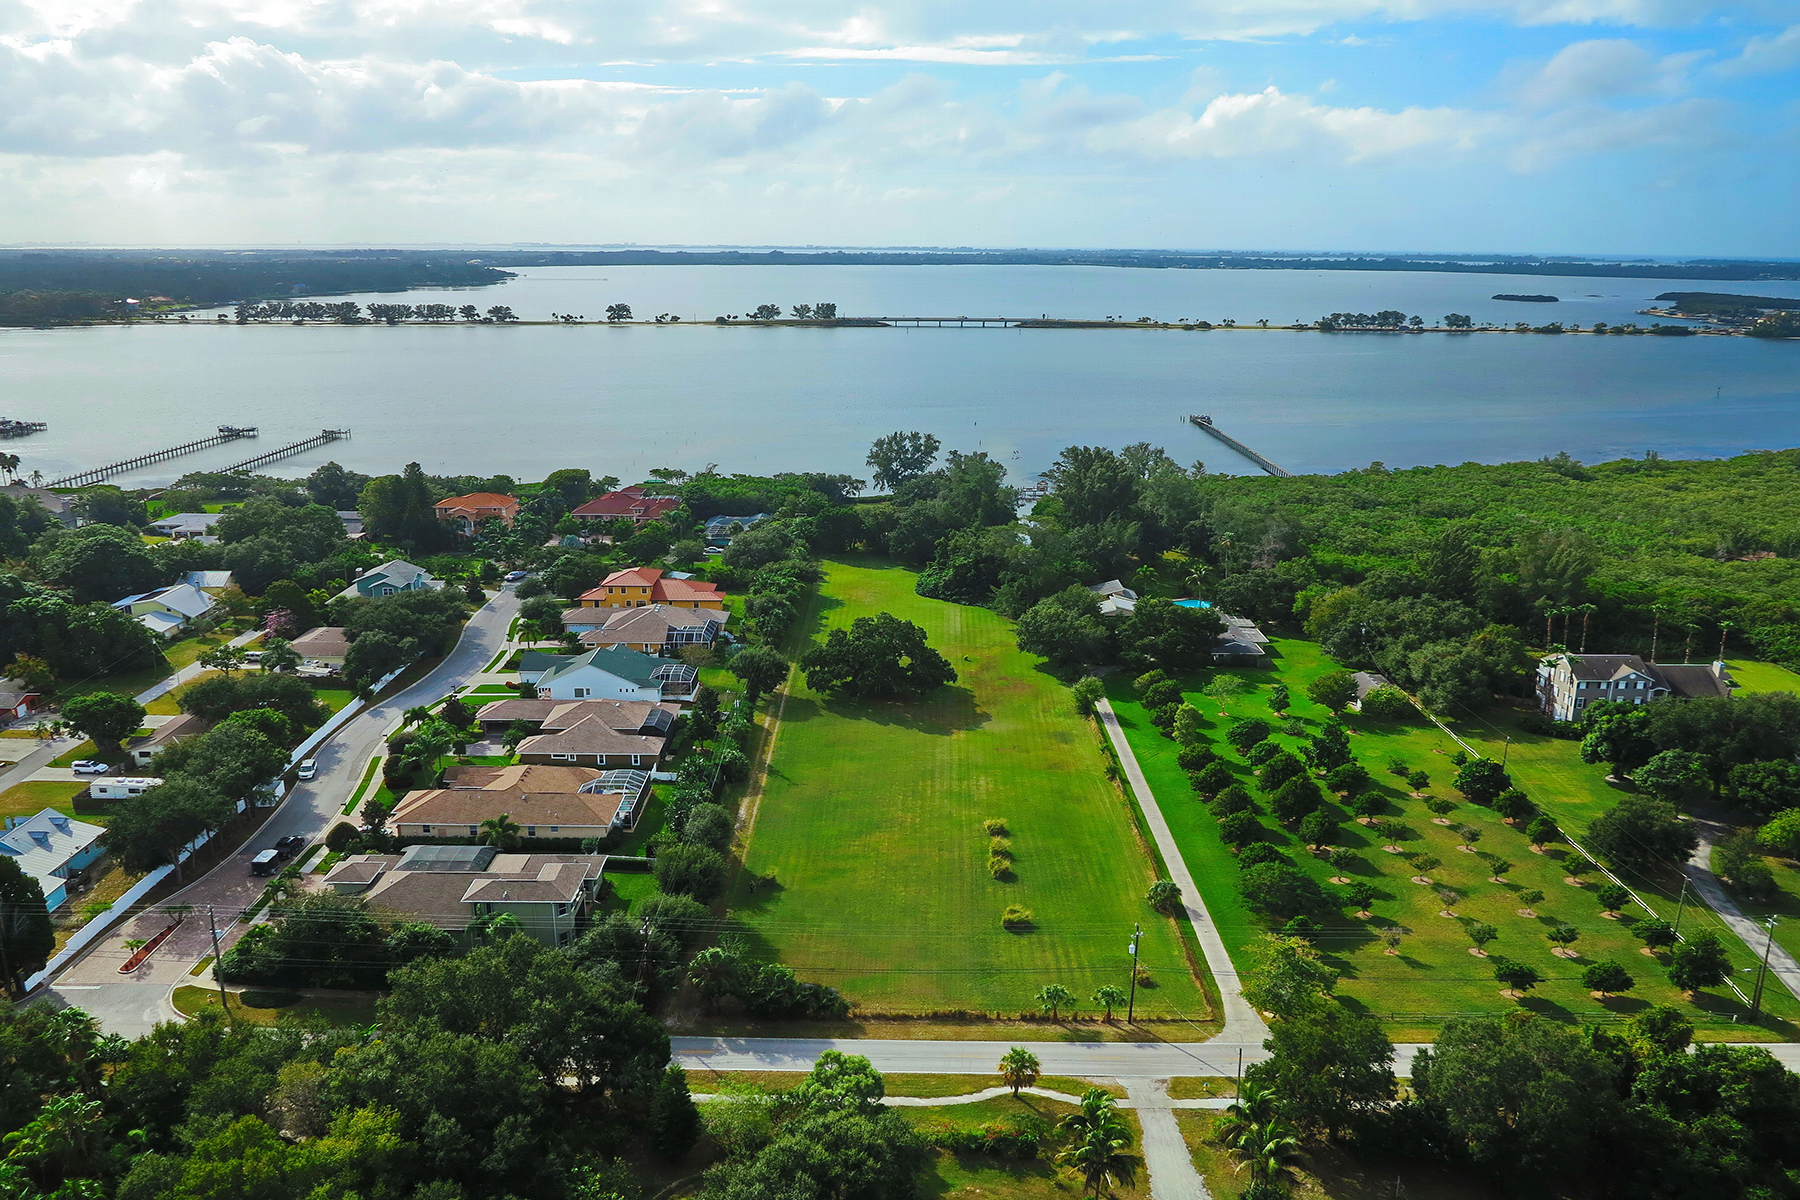 Land for Sale at WEST BRADENTON 8921 9th Ave NW 2 Bradenton, Florida, 34209 United States